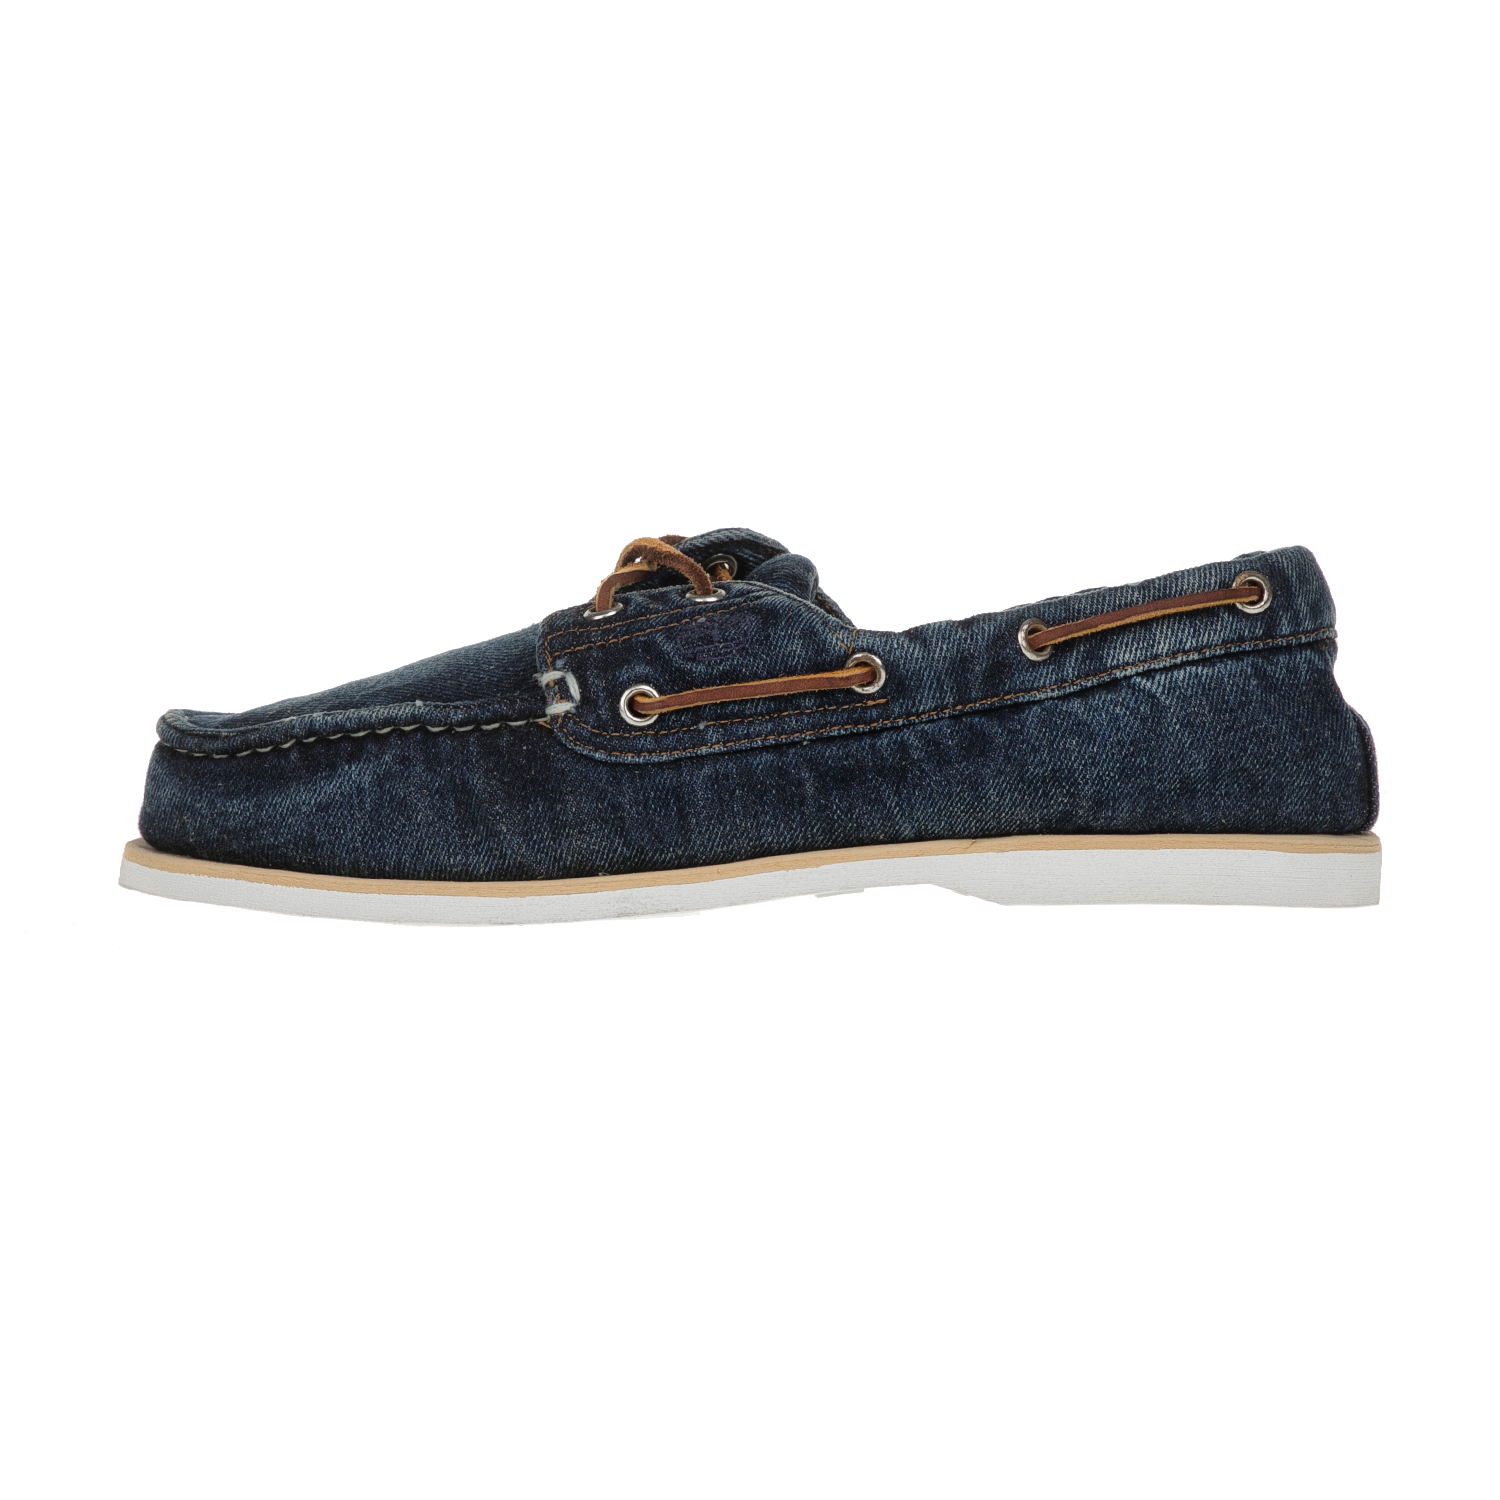 TIMBERLAND - Ανδρικά denim boat shoes TIMBERLAND BOAT μπλε ανδρικά παπούτσια boat shoes